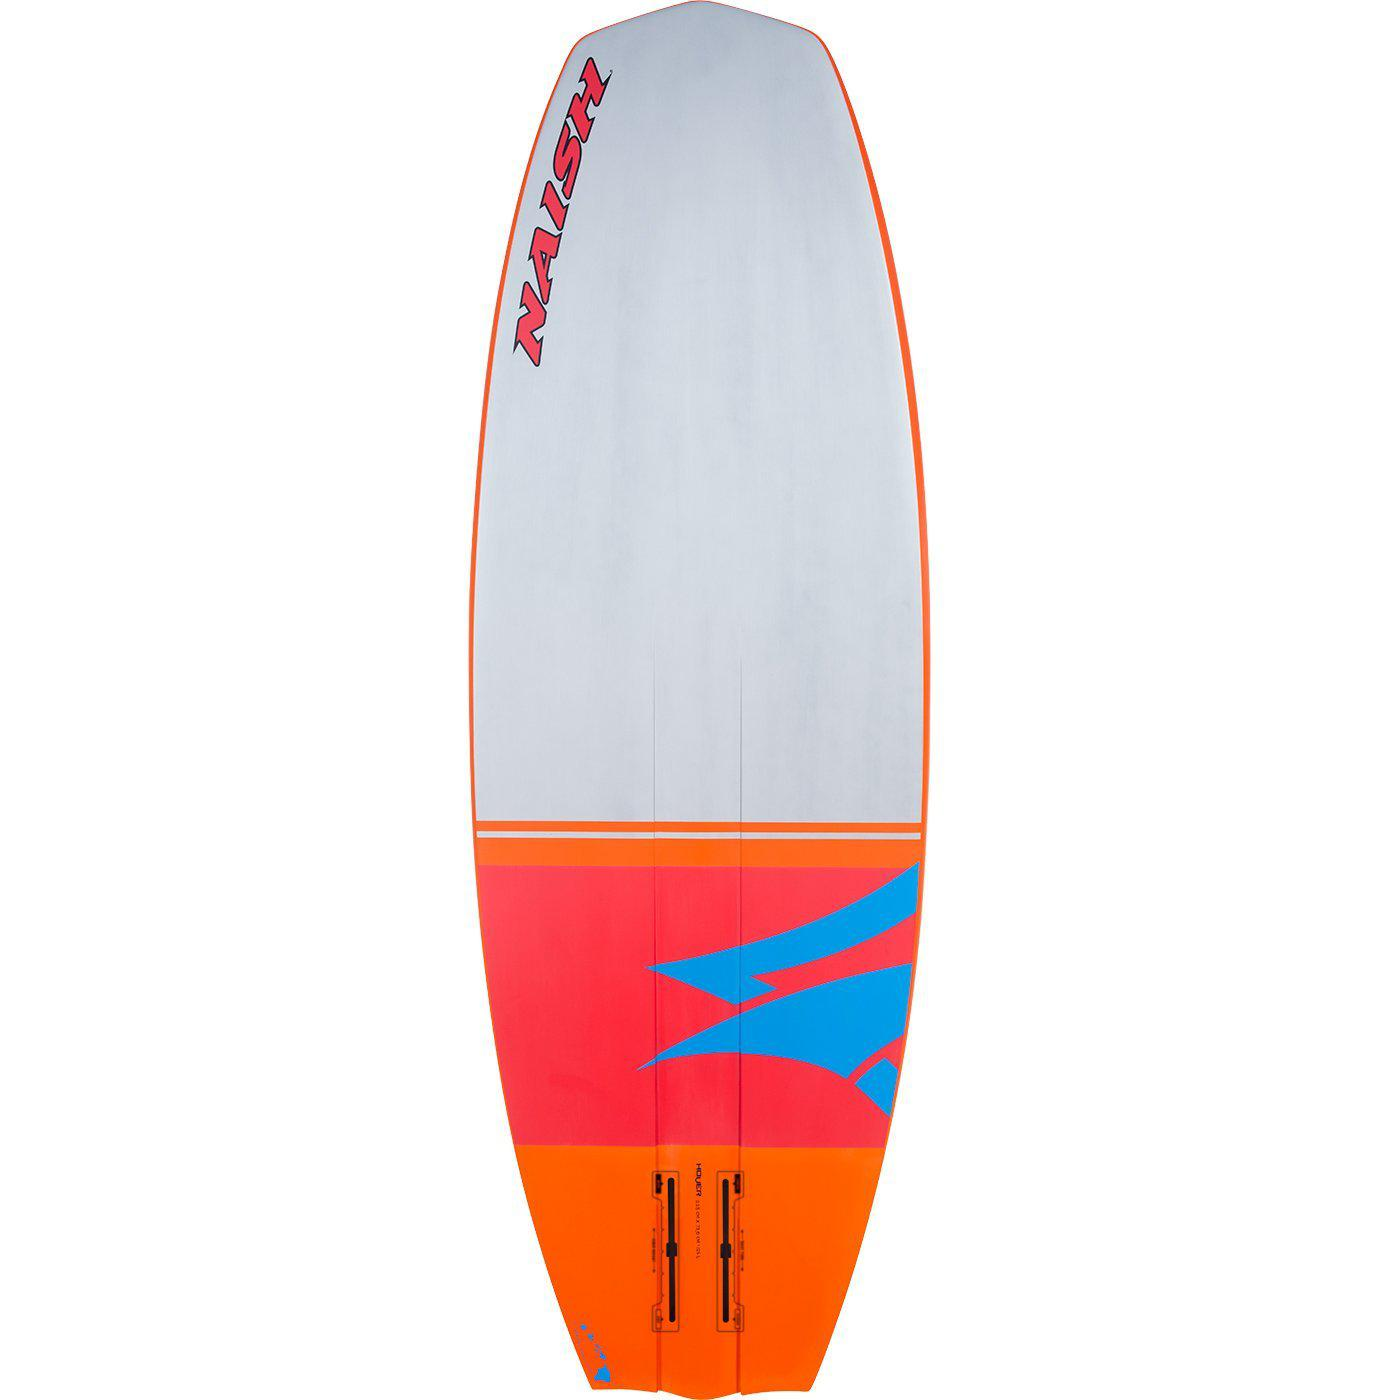 2020 Naish Hover Windsurf Foil Board-Big Winds